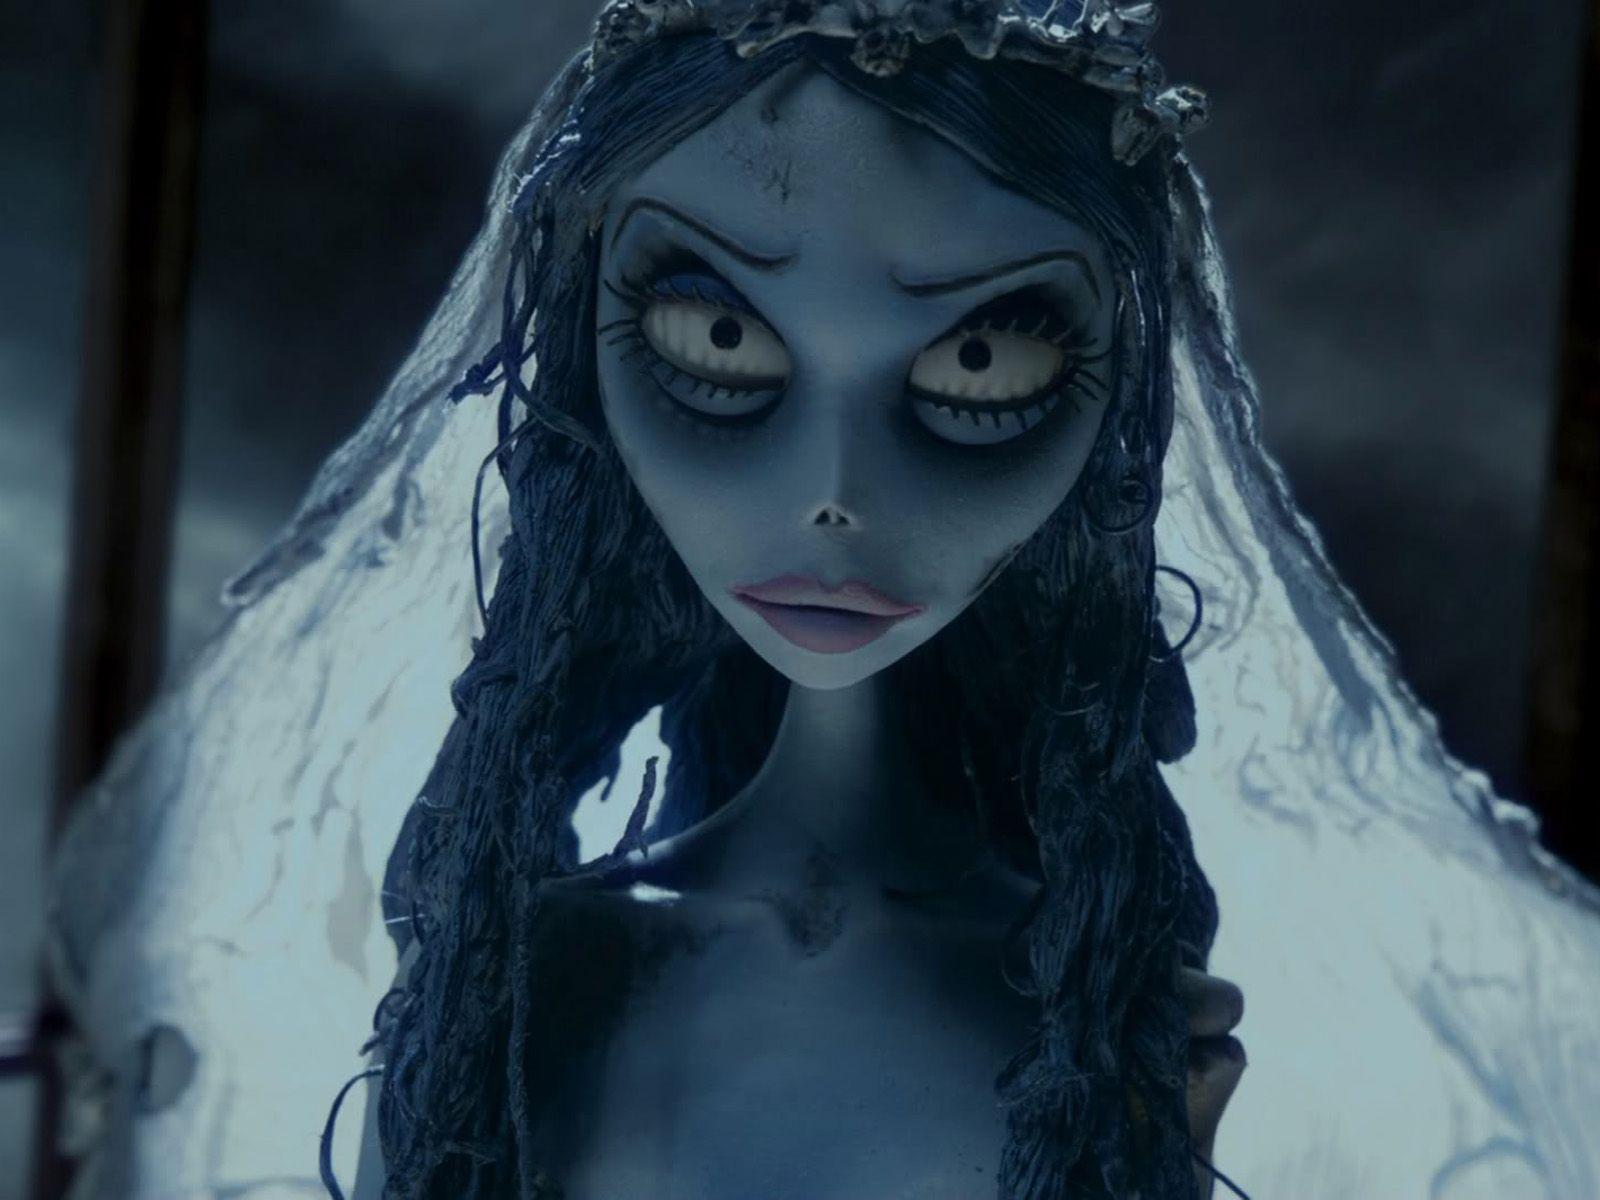 corpse bride movie wallpapers - photo #8